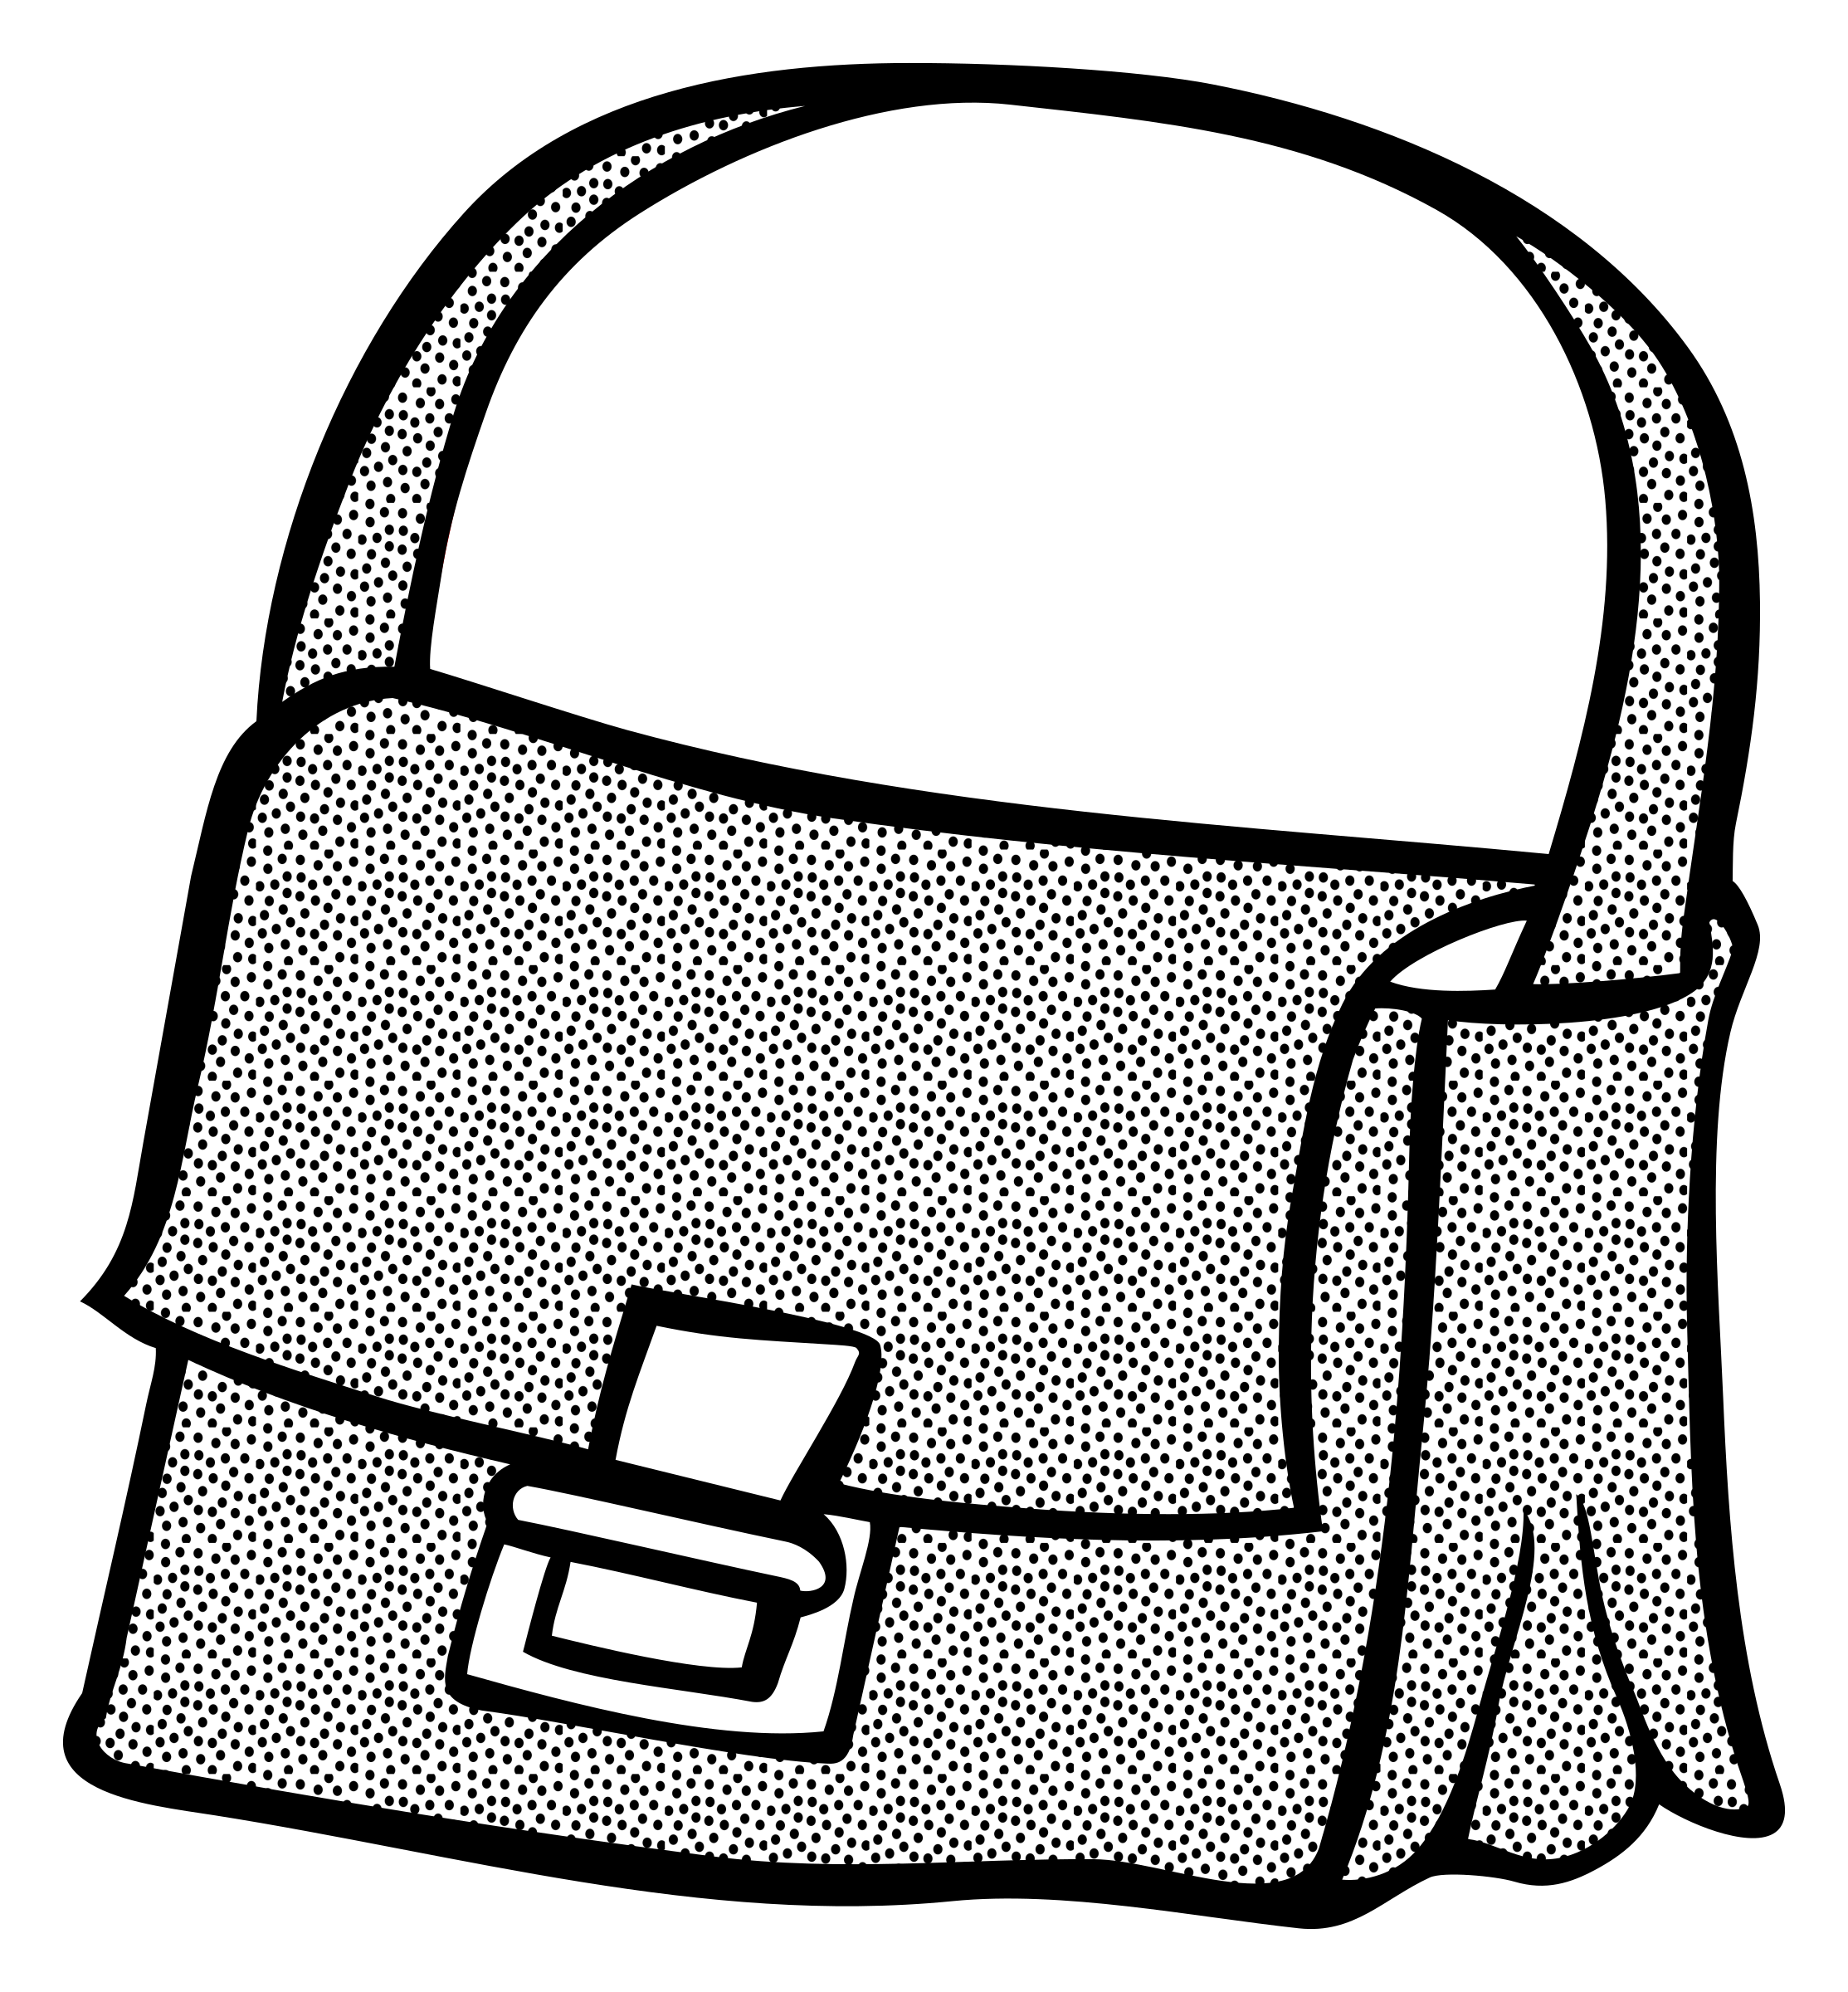 bag - lineart by frankes